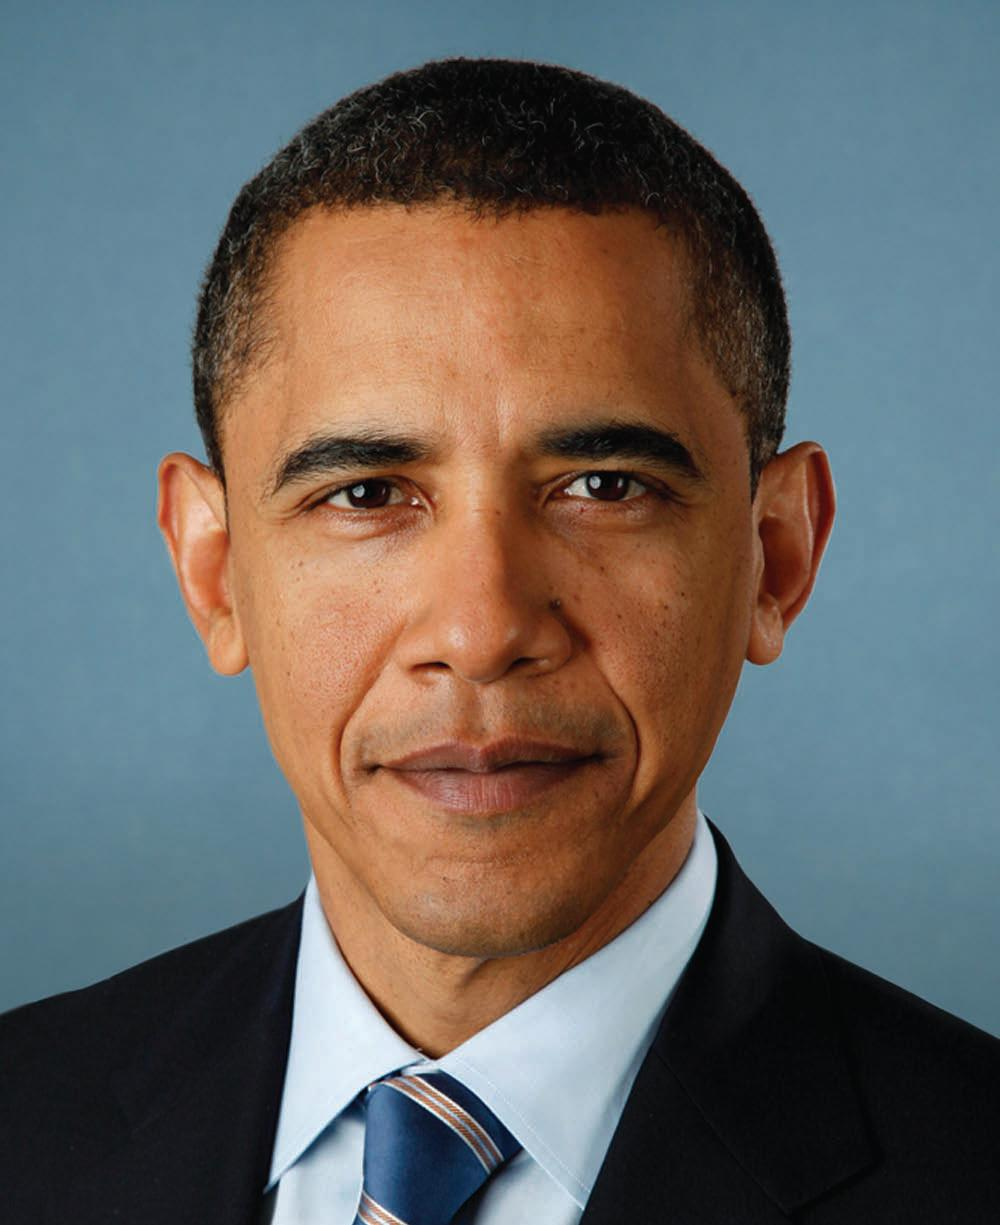 Image result for barack obama hd